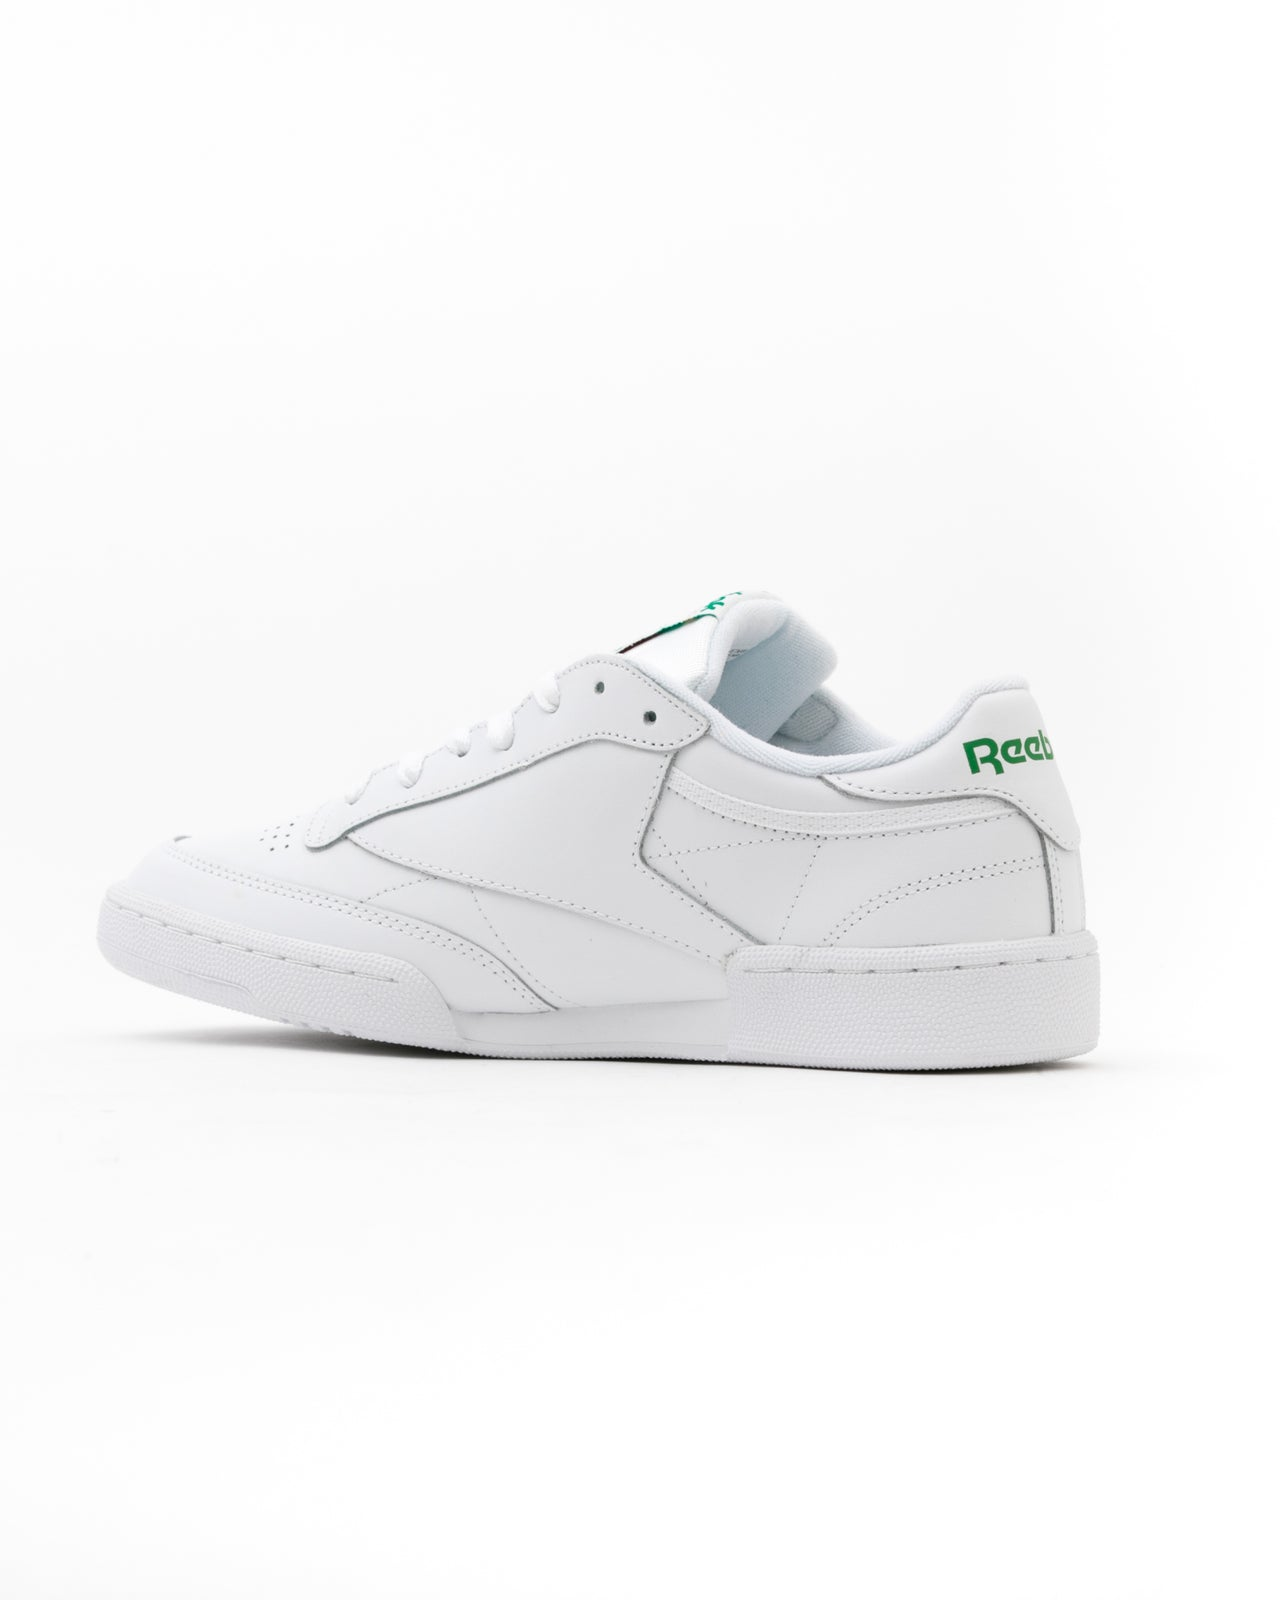 Club C 85 - Color: White/Green | White